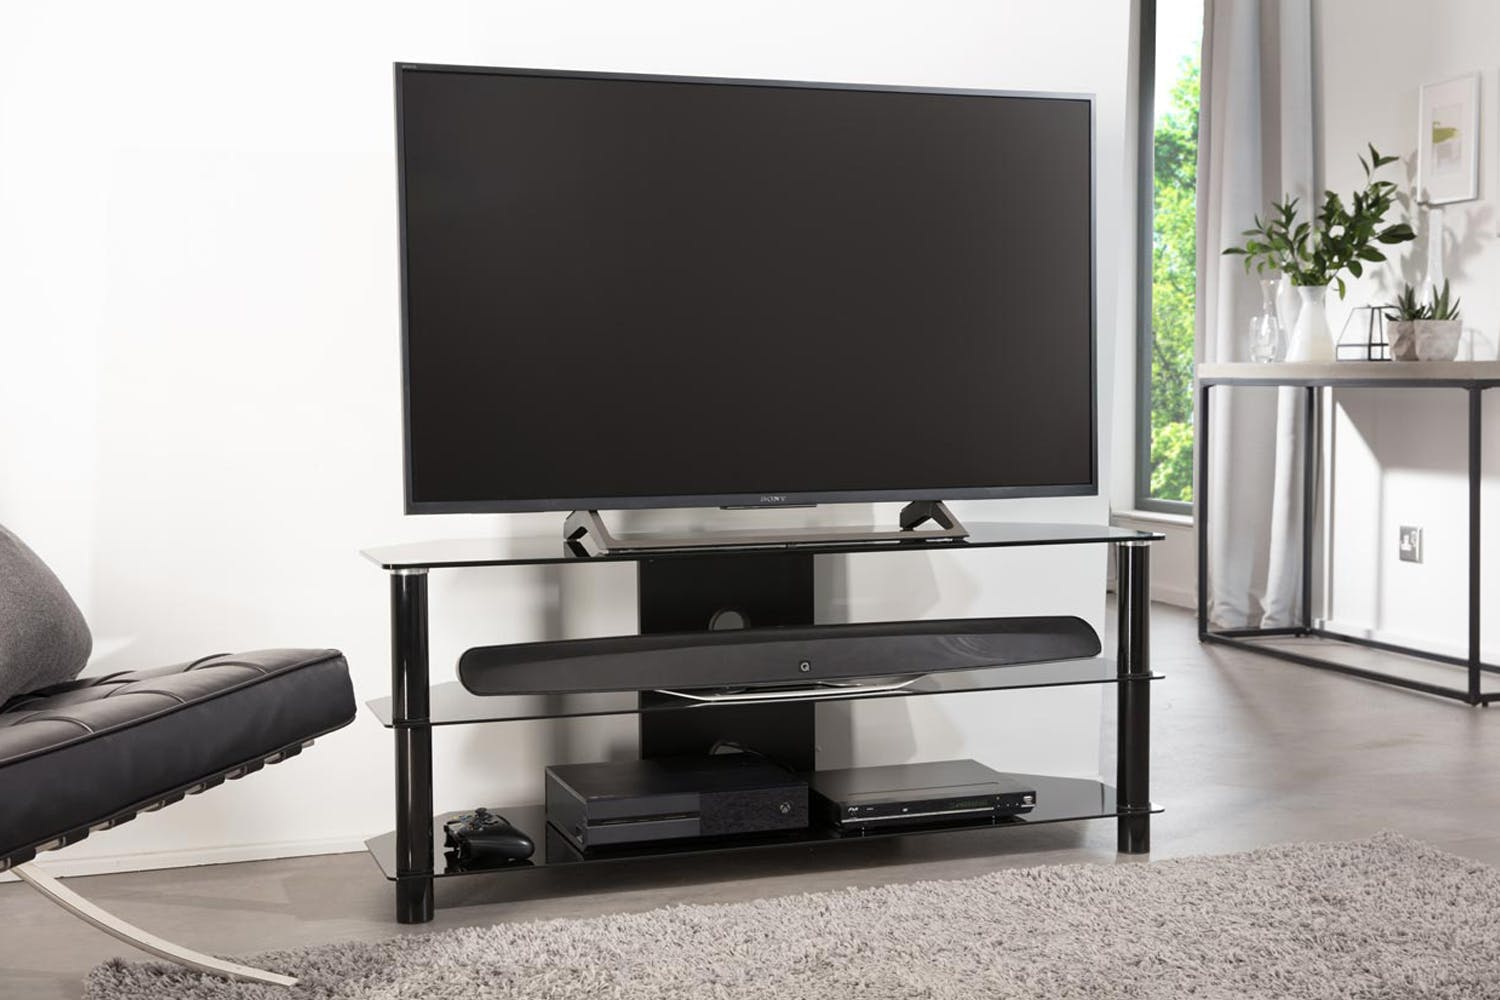 Alphason Essential 1200mm 3 Shelf TV Stand | Black